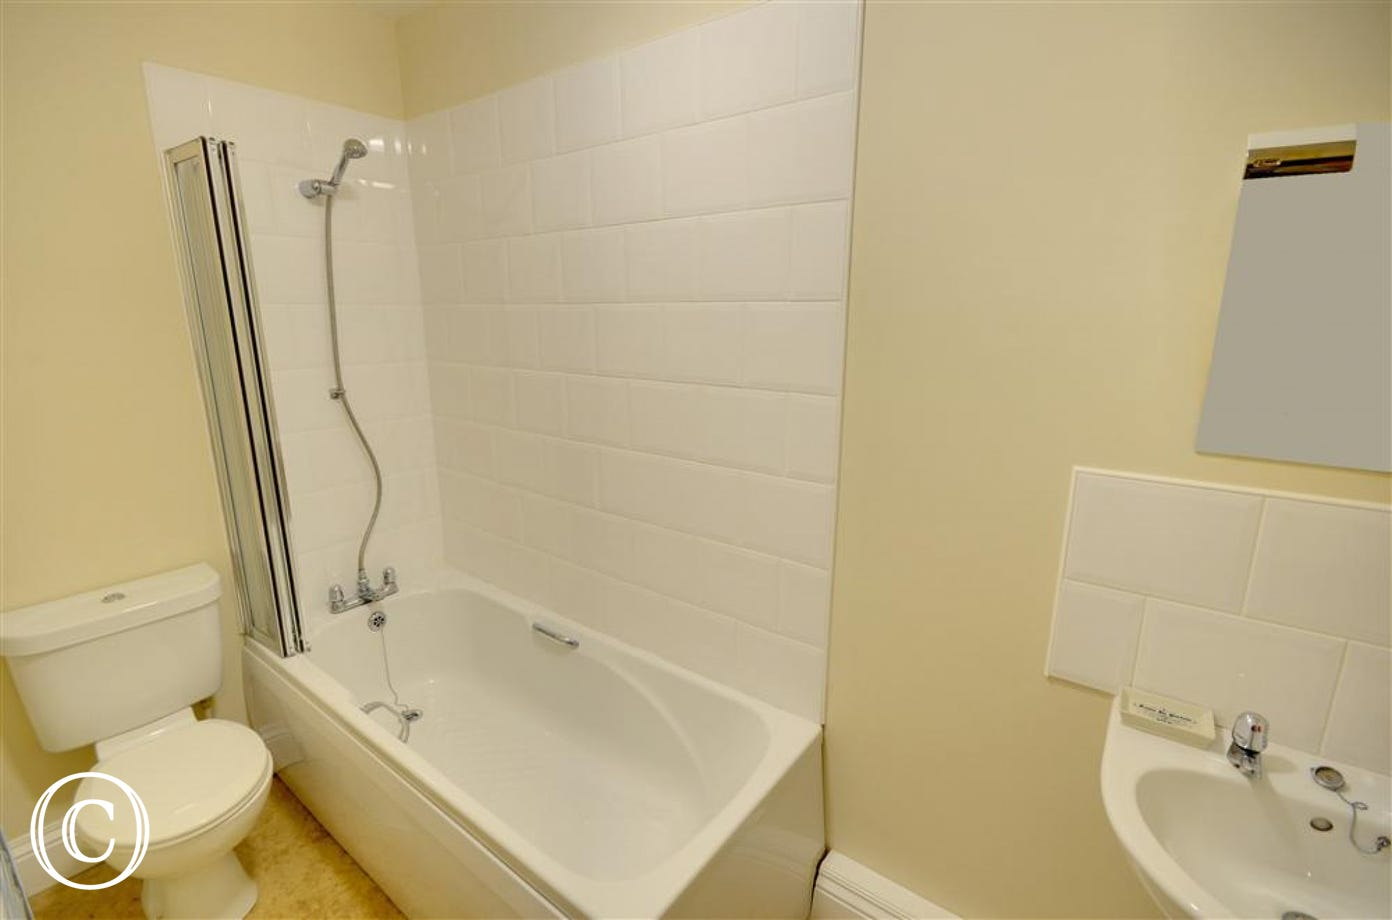 Main Bathroom featuring both bath and shower facilities.